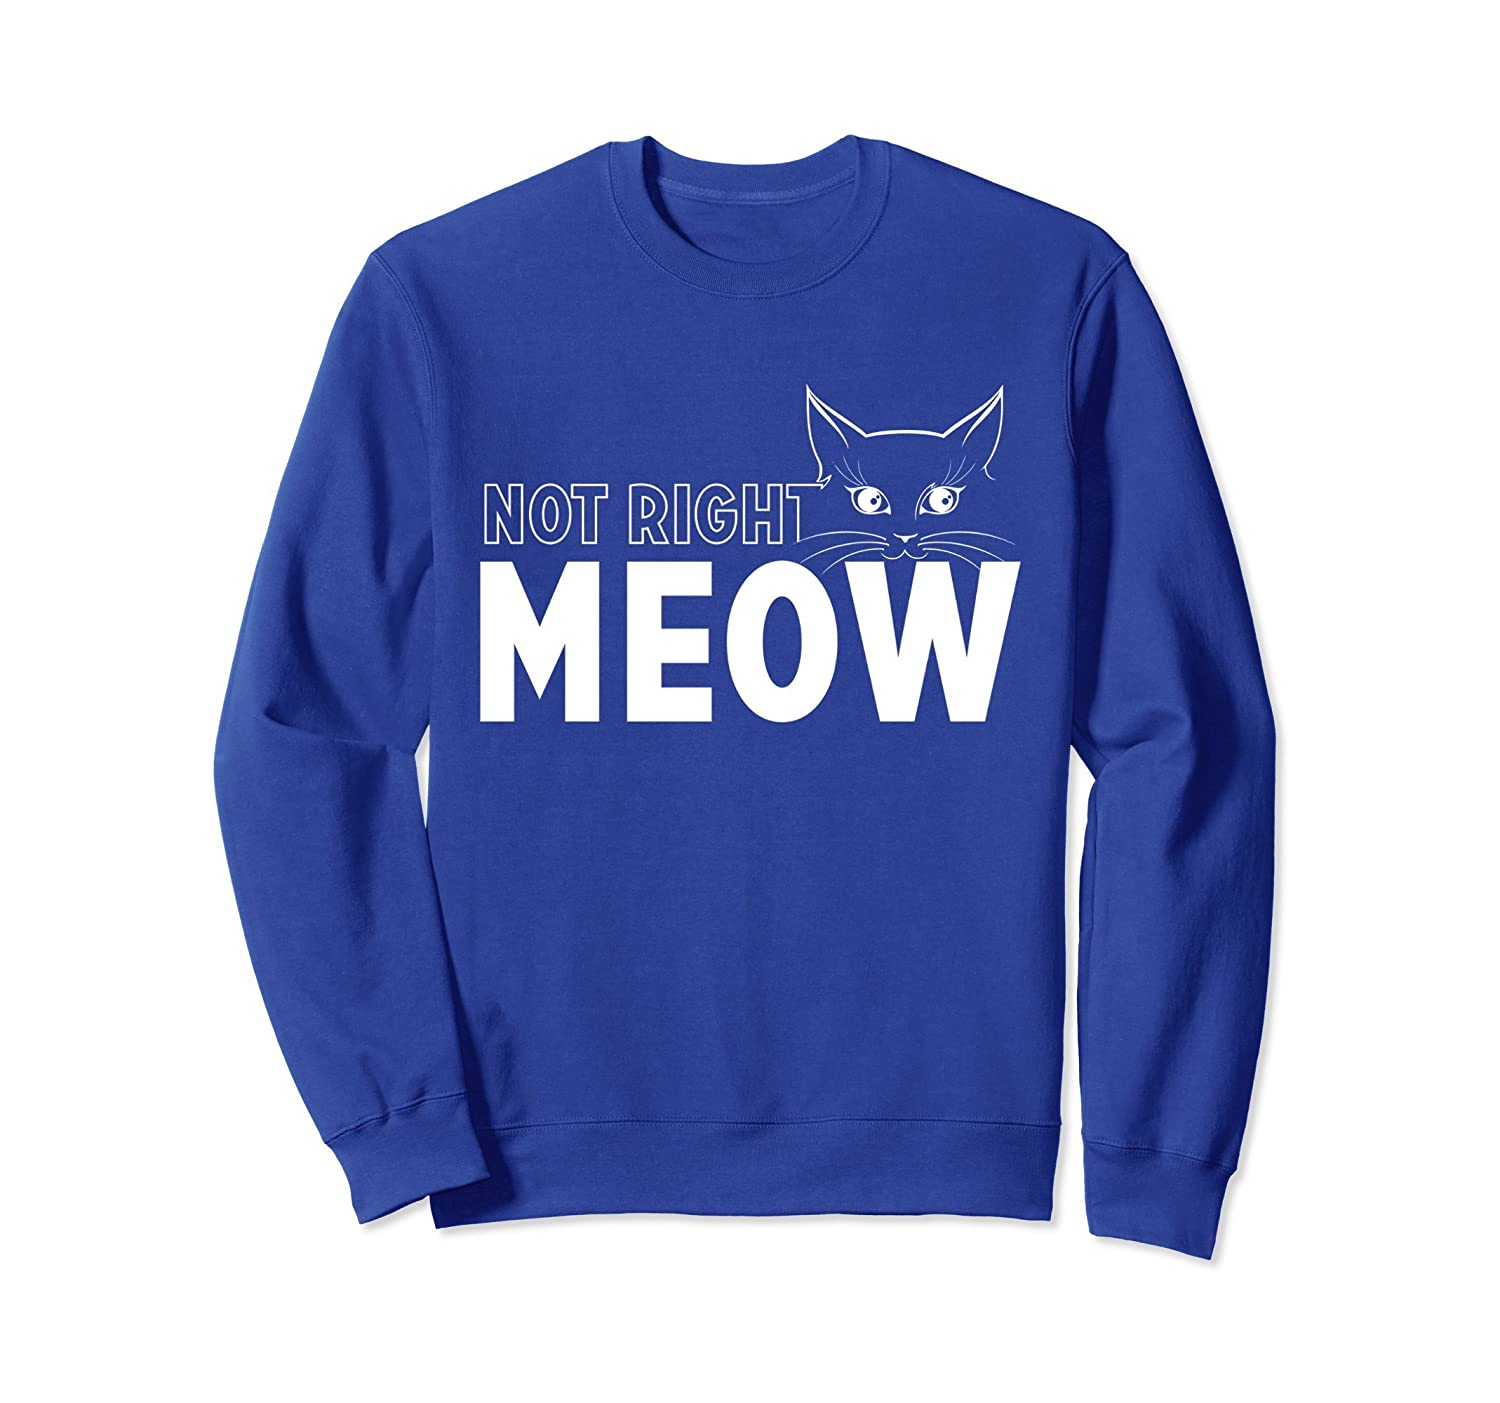 Funny Not Right Meow Crewneck Sweatshirt for Cat Lovers-alottee gift